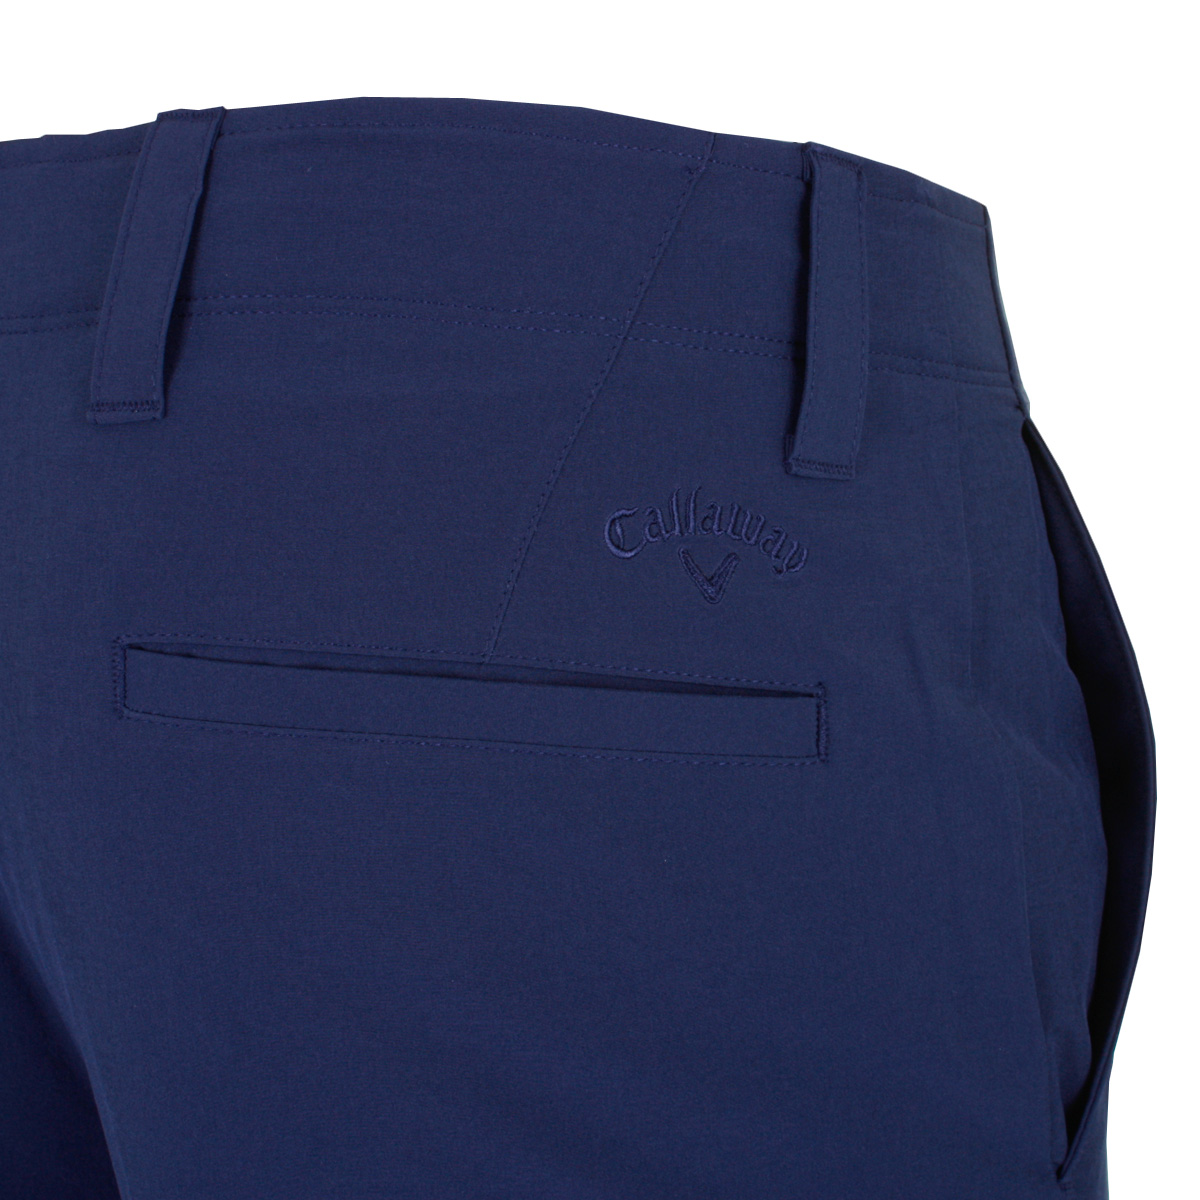 Callaway-Mens-2019-Chev-Tech-II-Lightweight-Stretch-Golf-Trousers-28-OFF-RRP thumbnail 16